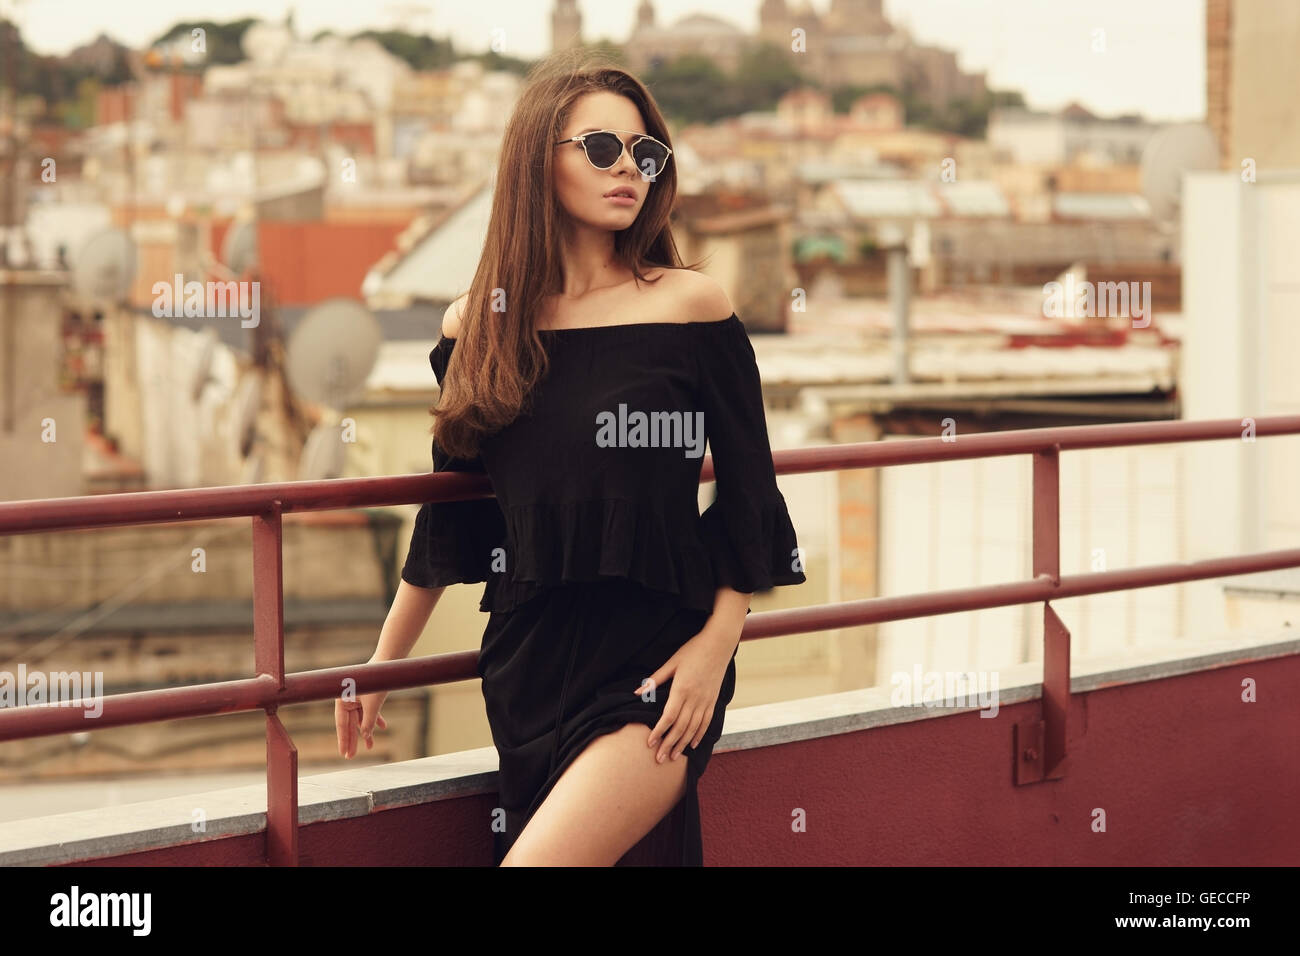 47f9a9813 Stylish girl in black clothes Stock Photo  112140666 - Alamy